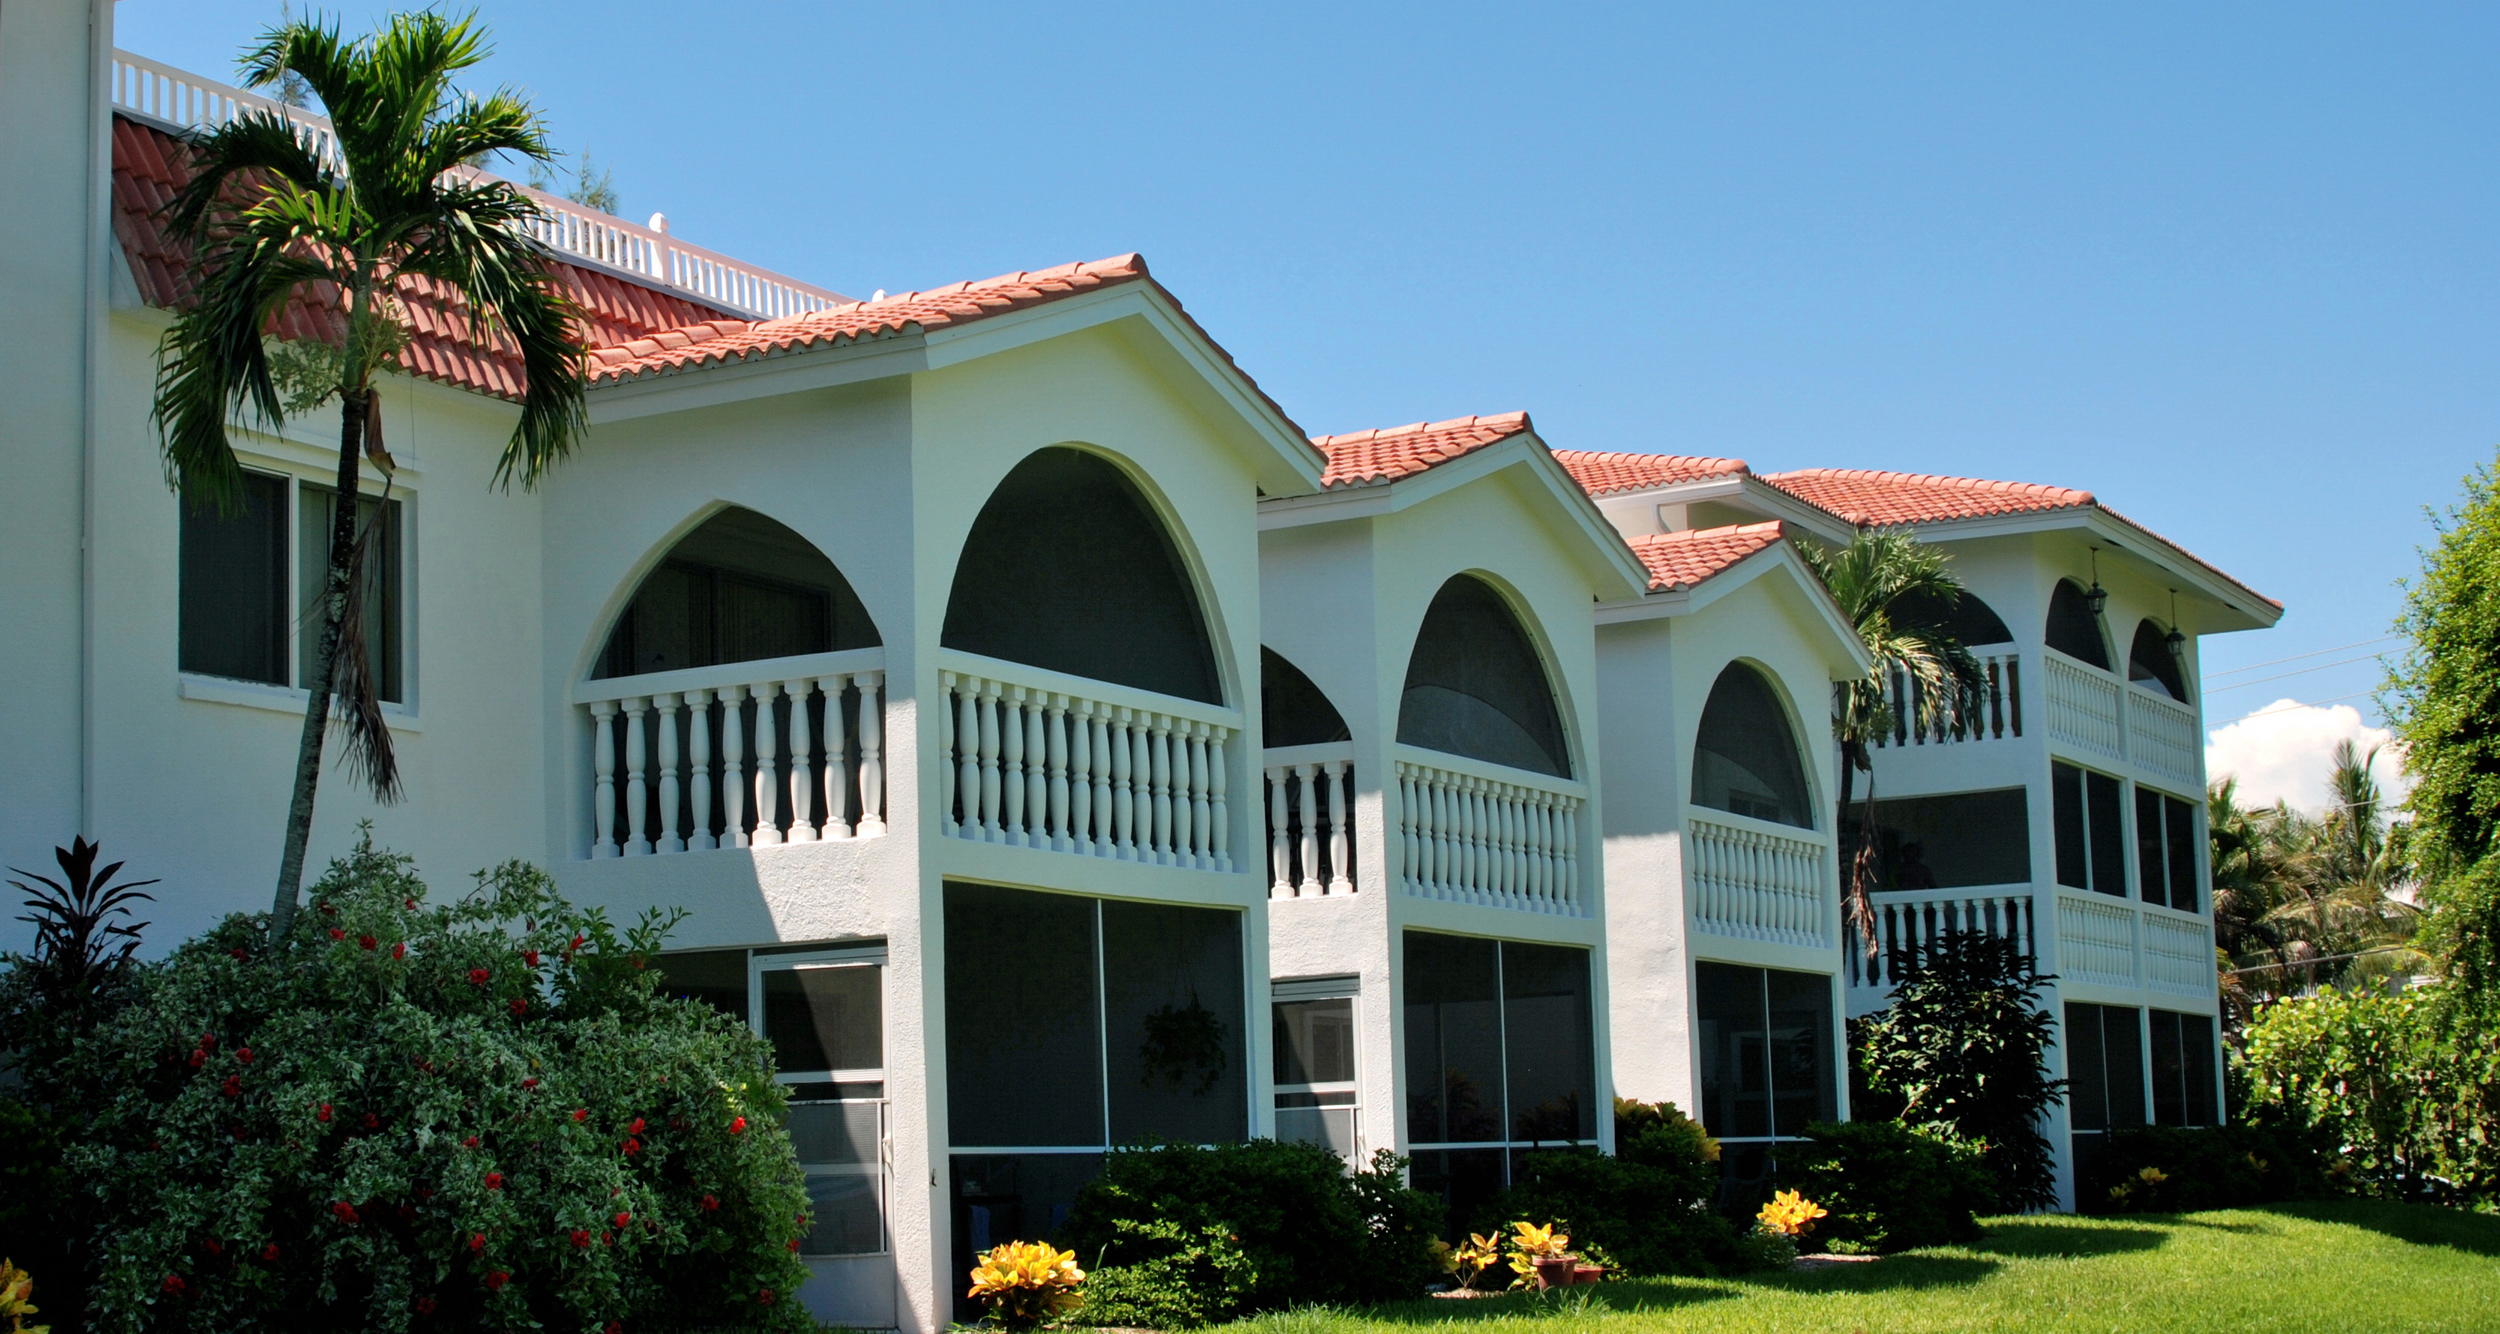 Breakers West, lanai-side view; B-2 is on the middle floor, far right.